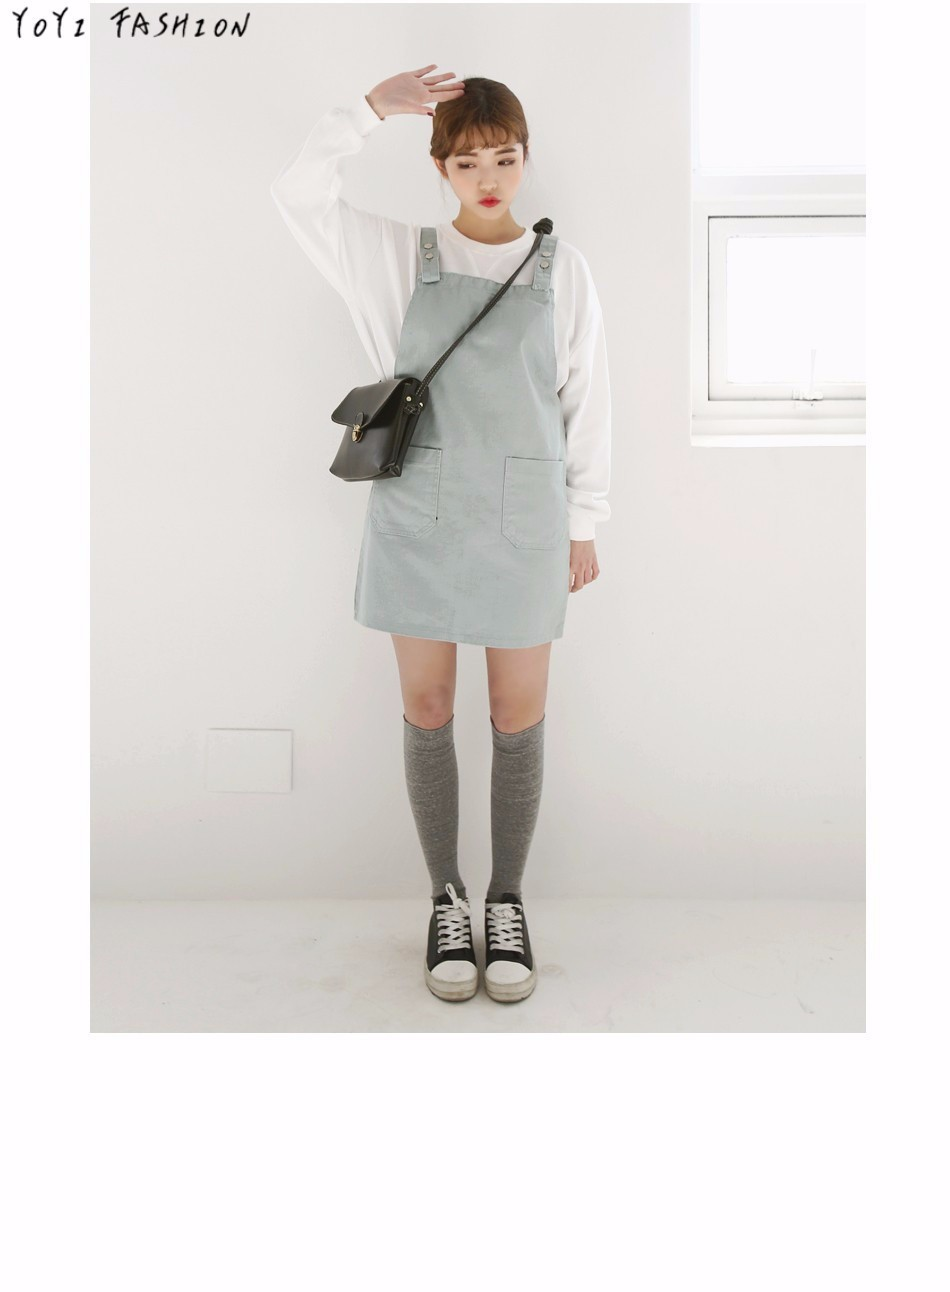 2016 Fashion Pink Jean Suspender Dress with Pockets Loose High School Overall Dress Pinafore Short Dress